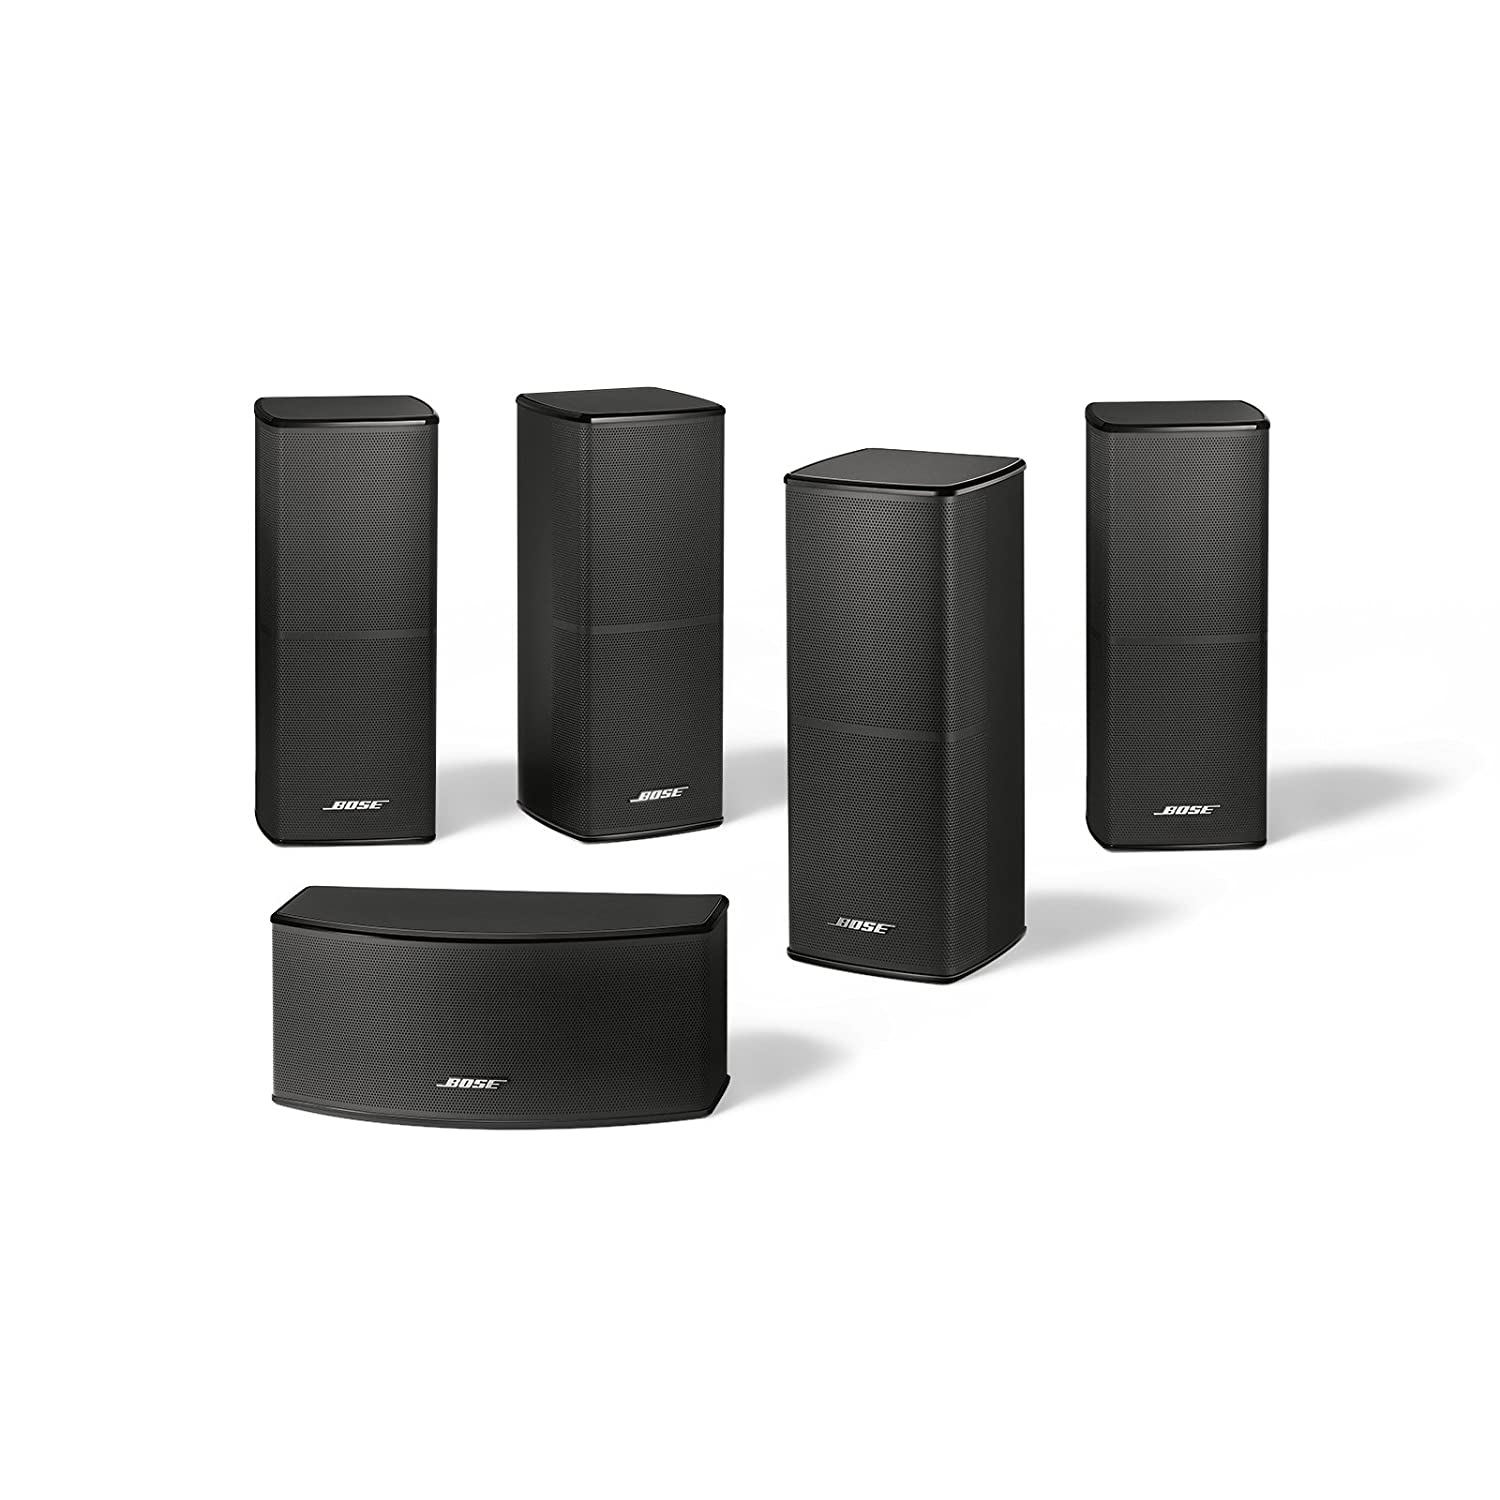 Bose Lifestyle 600 Home Entertainment System Works With Av Receivers Datasheet For Theater Product Solution Alexa Black 761682 1110 Audio